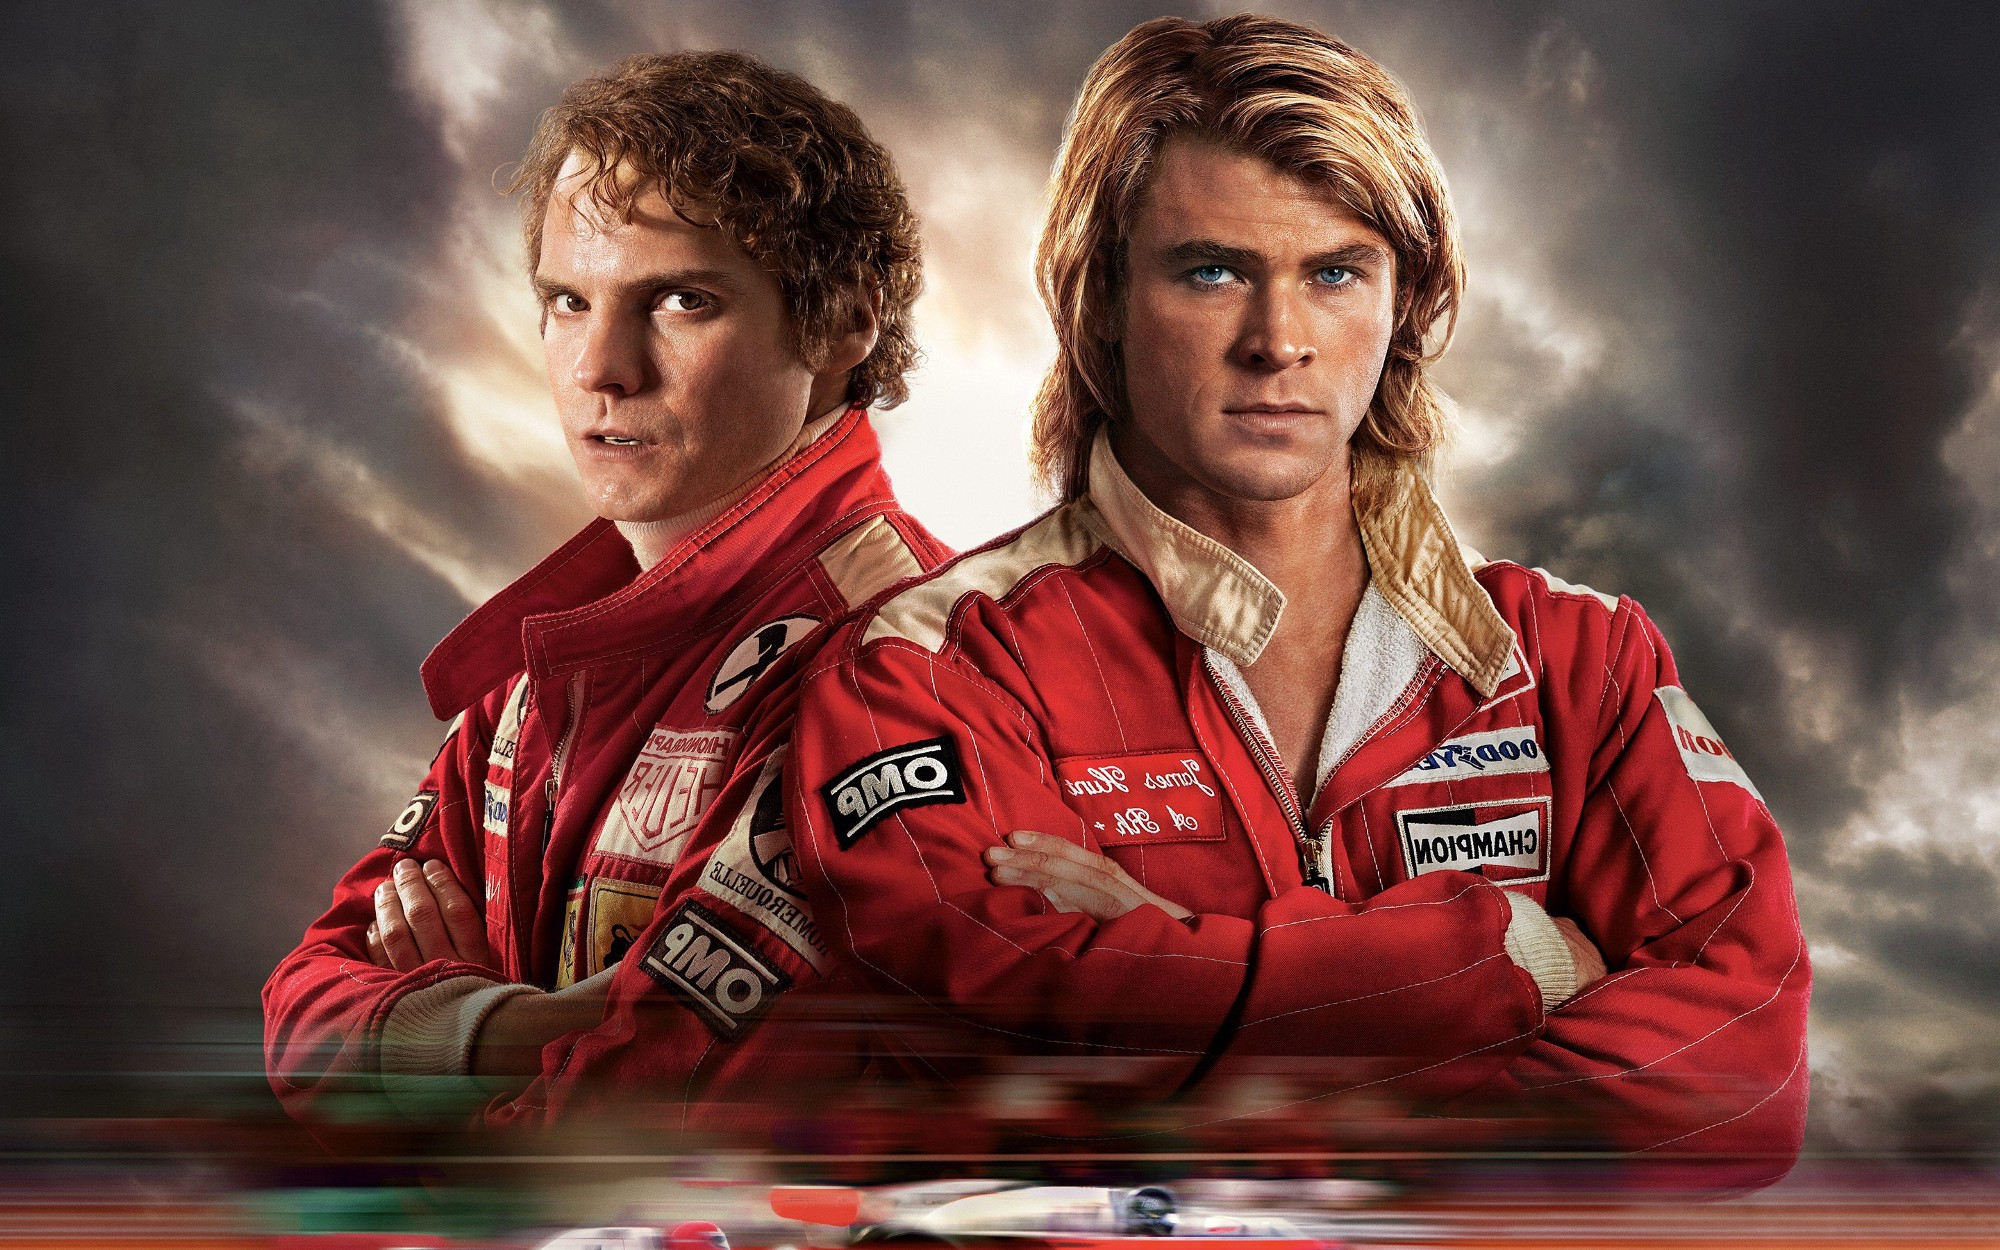 Movie review rush 2013 honest movie reviews medium i usually dont watch movies about cars because i find them to be quite boring rush however surprised me with its execution voltagebd Image collections